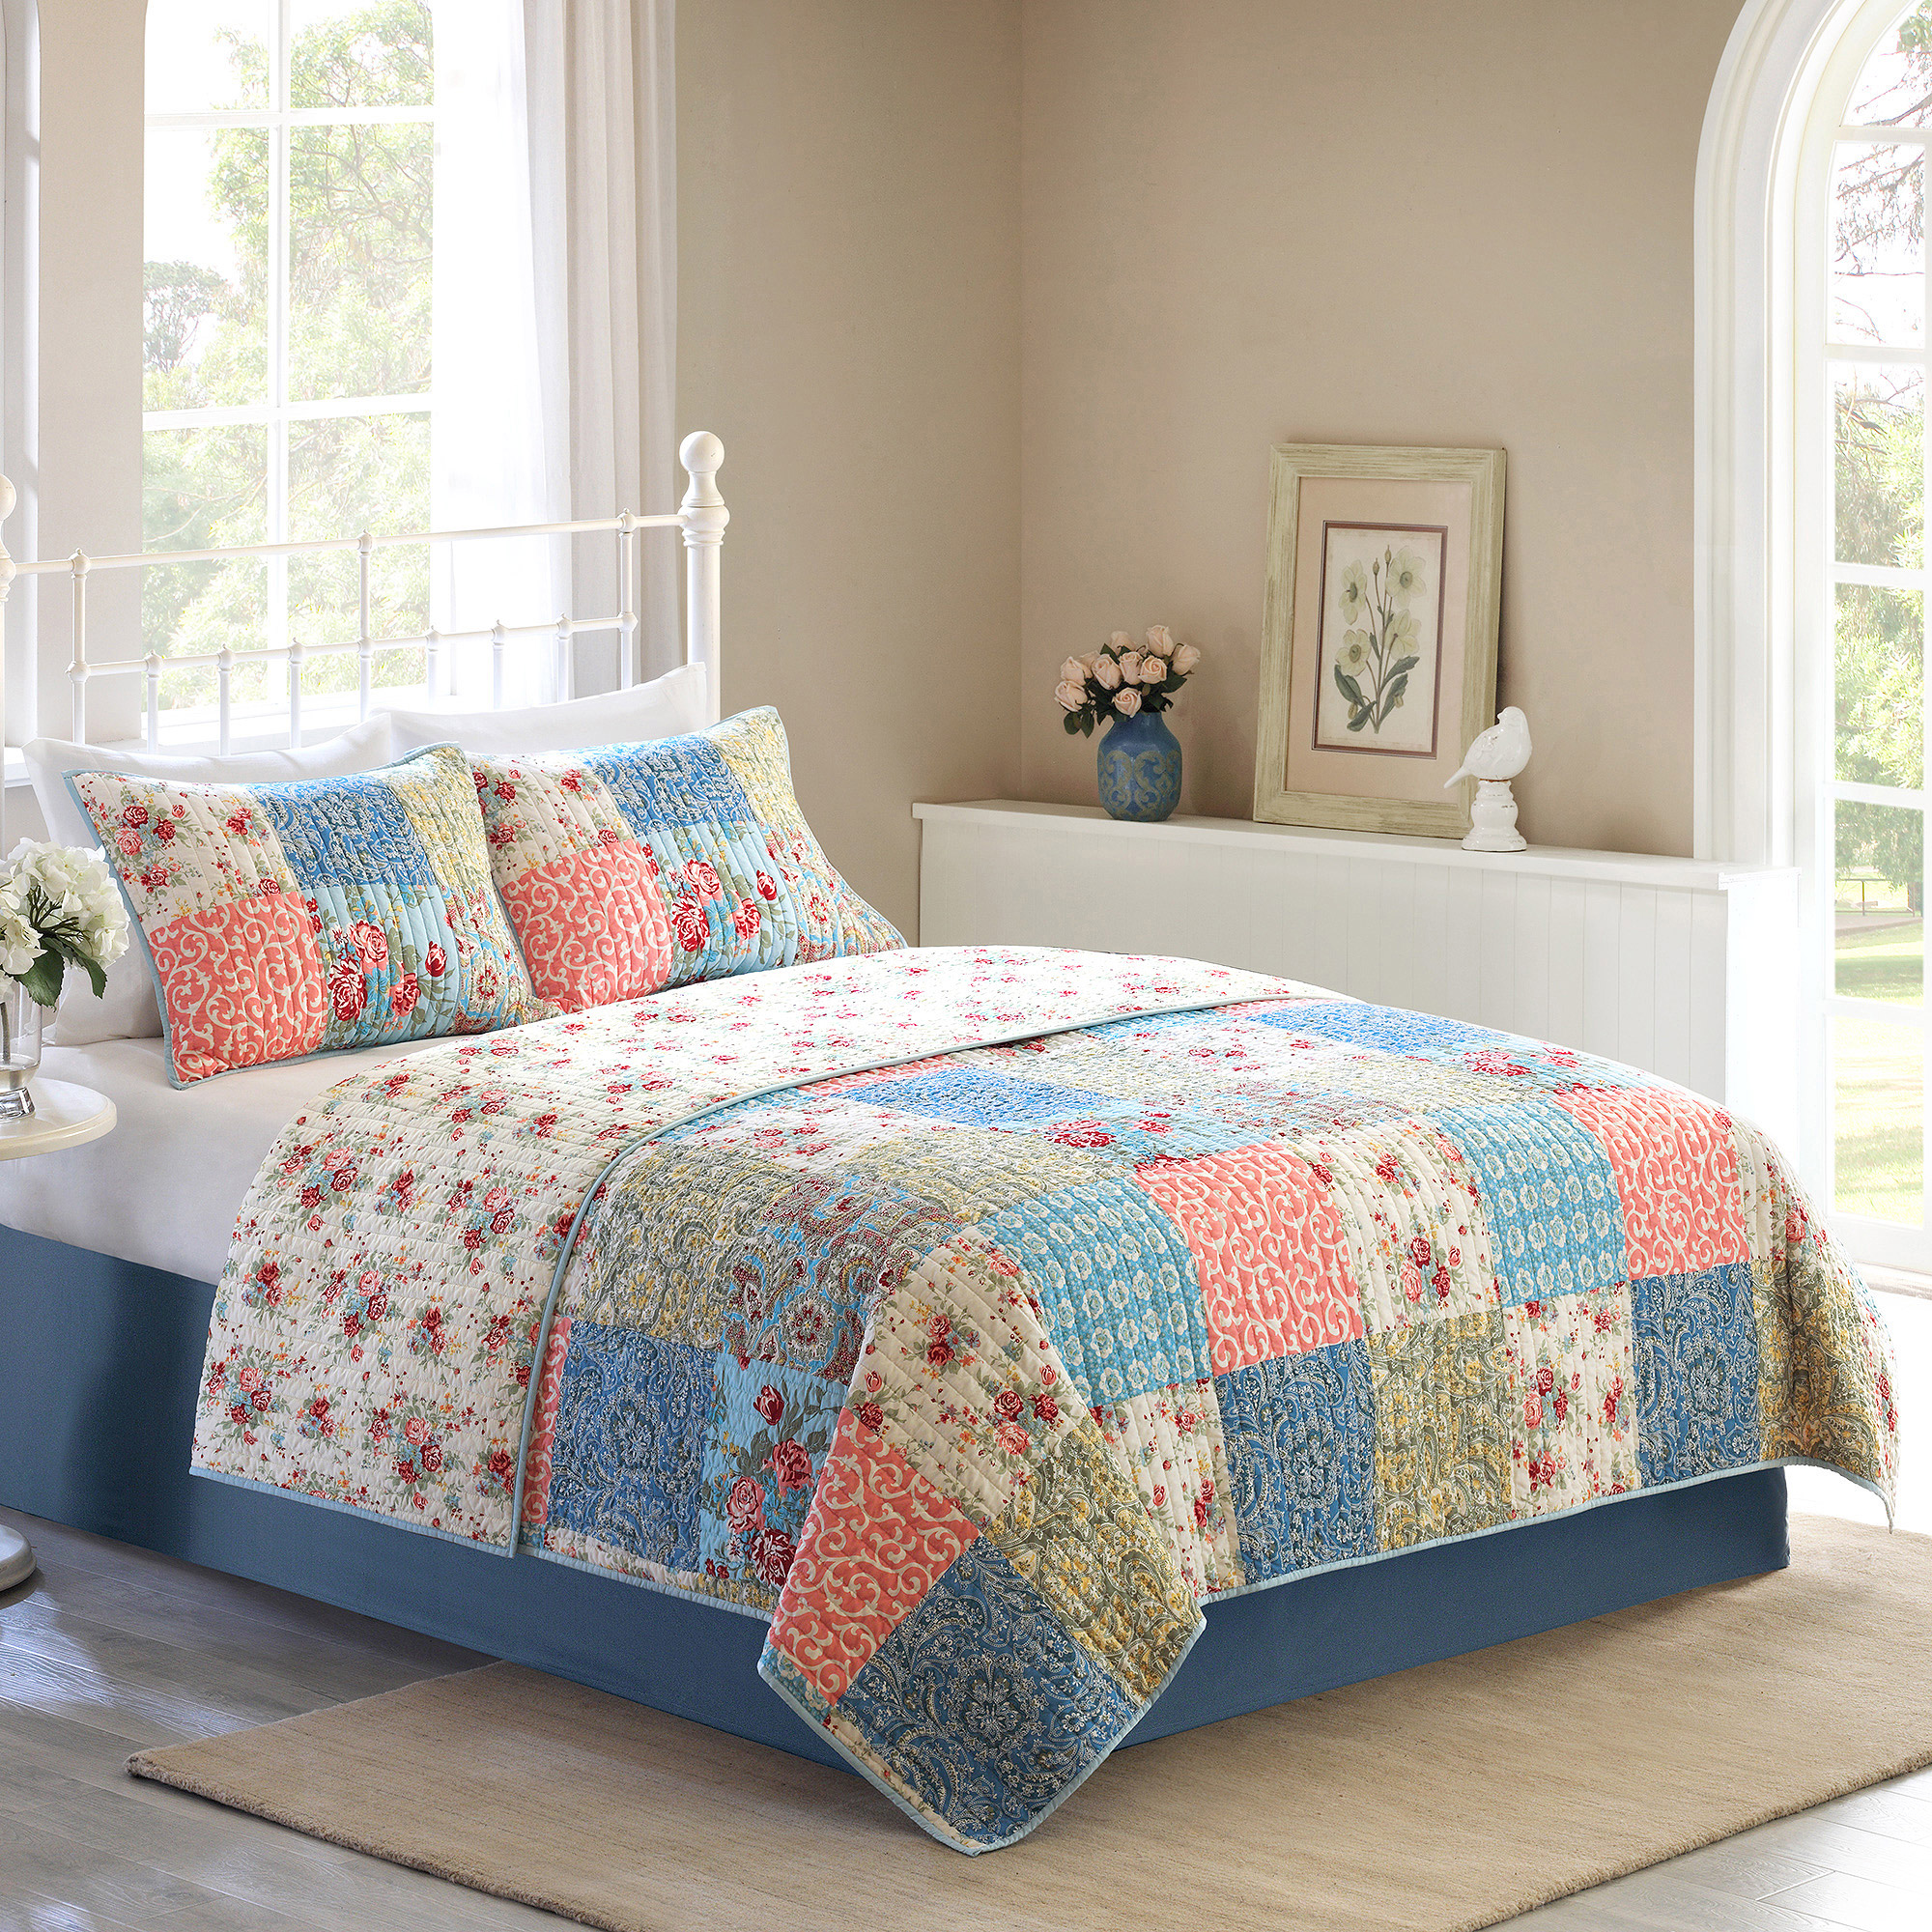 Better Homes and Gardens Quilt Collection Vintage Walmartcom